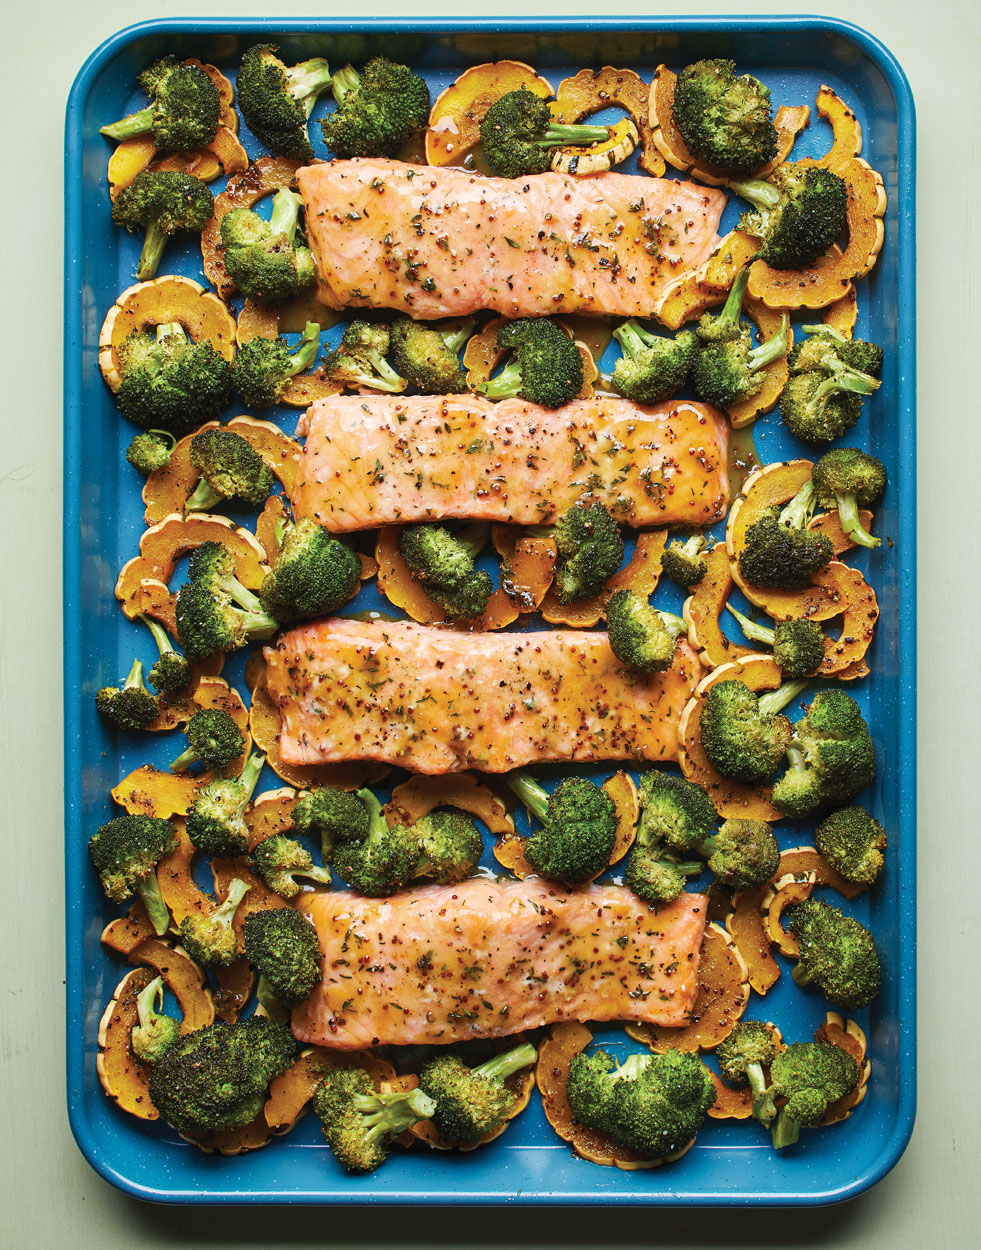 Maple-Mustard Sheet Pan Salmon with Delicata & Broccoli